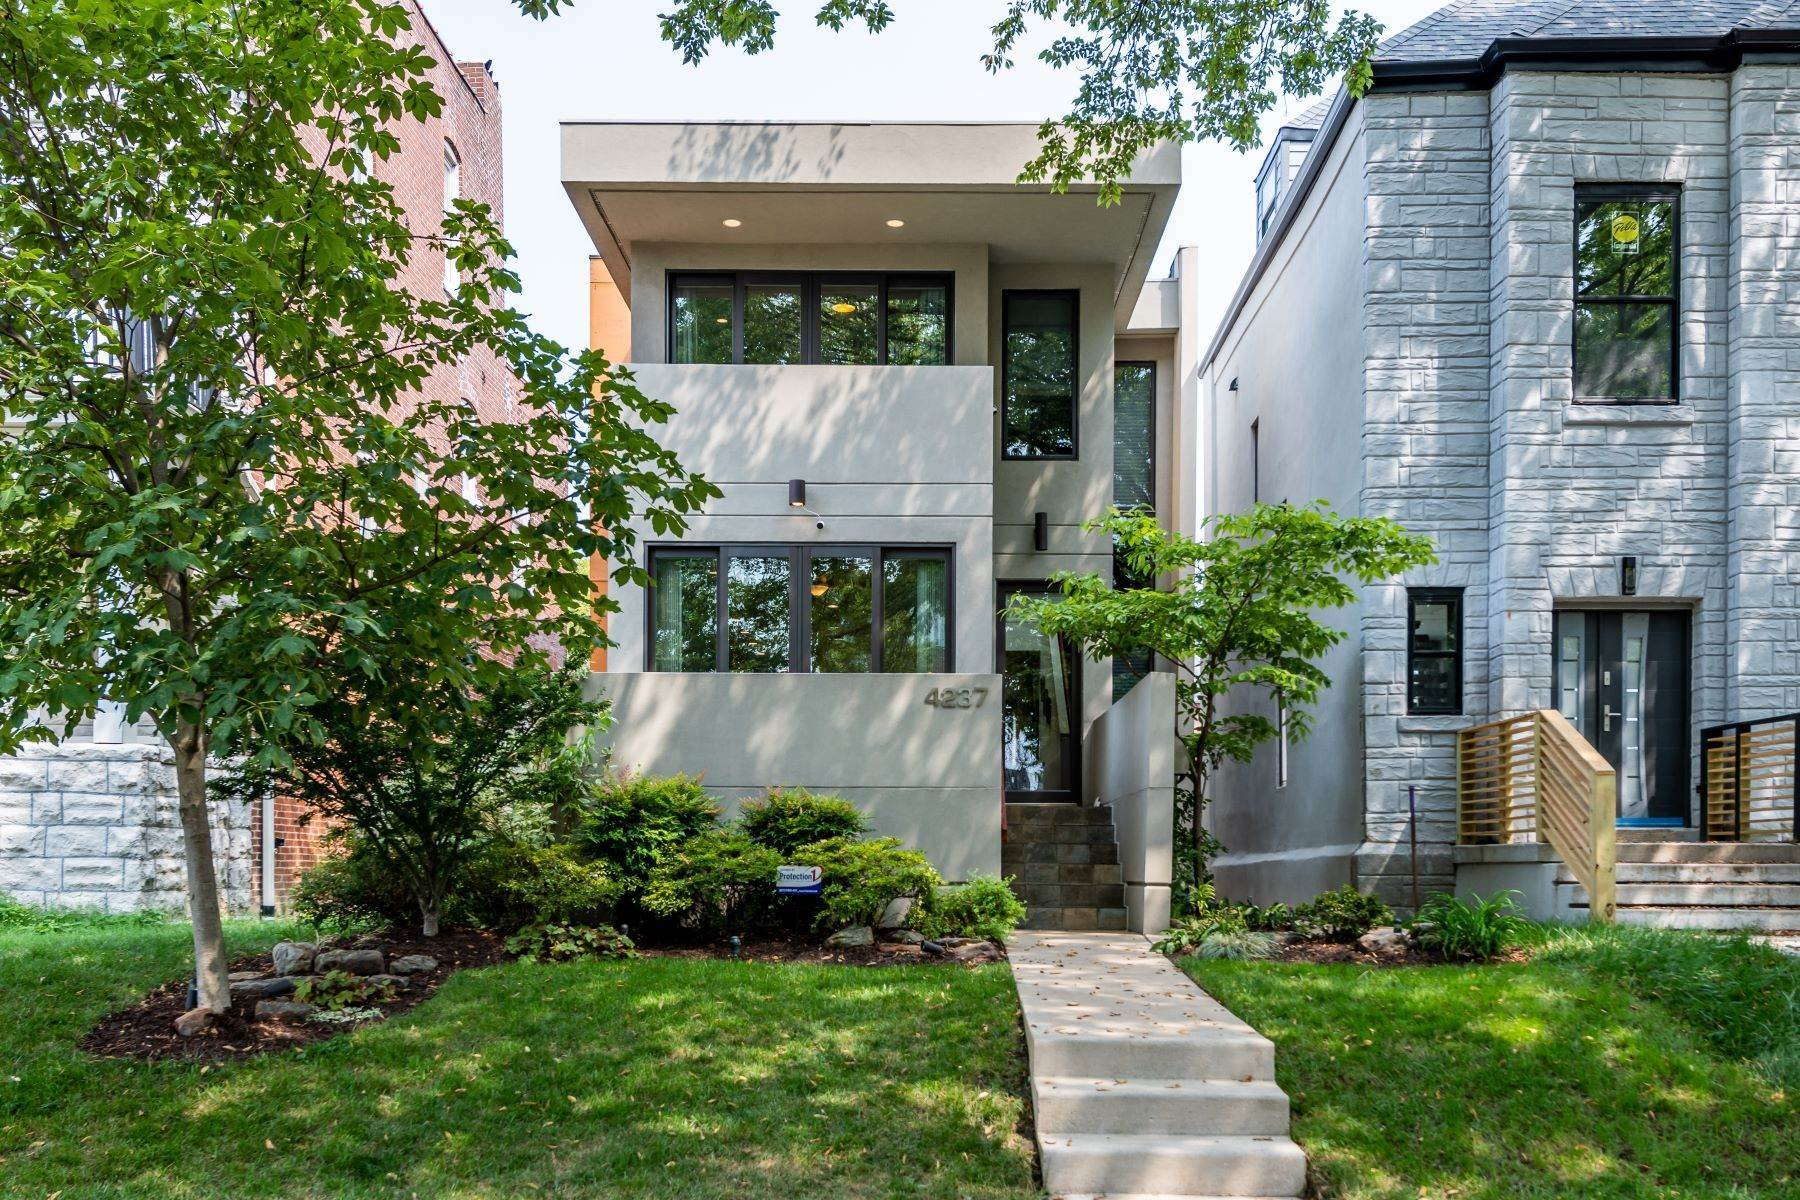 Property for Sale at Celebration of Contemporary Design in CWE 4237 McPherson Avenue St. Louis, Missouri 63108 United States